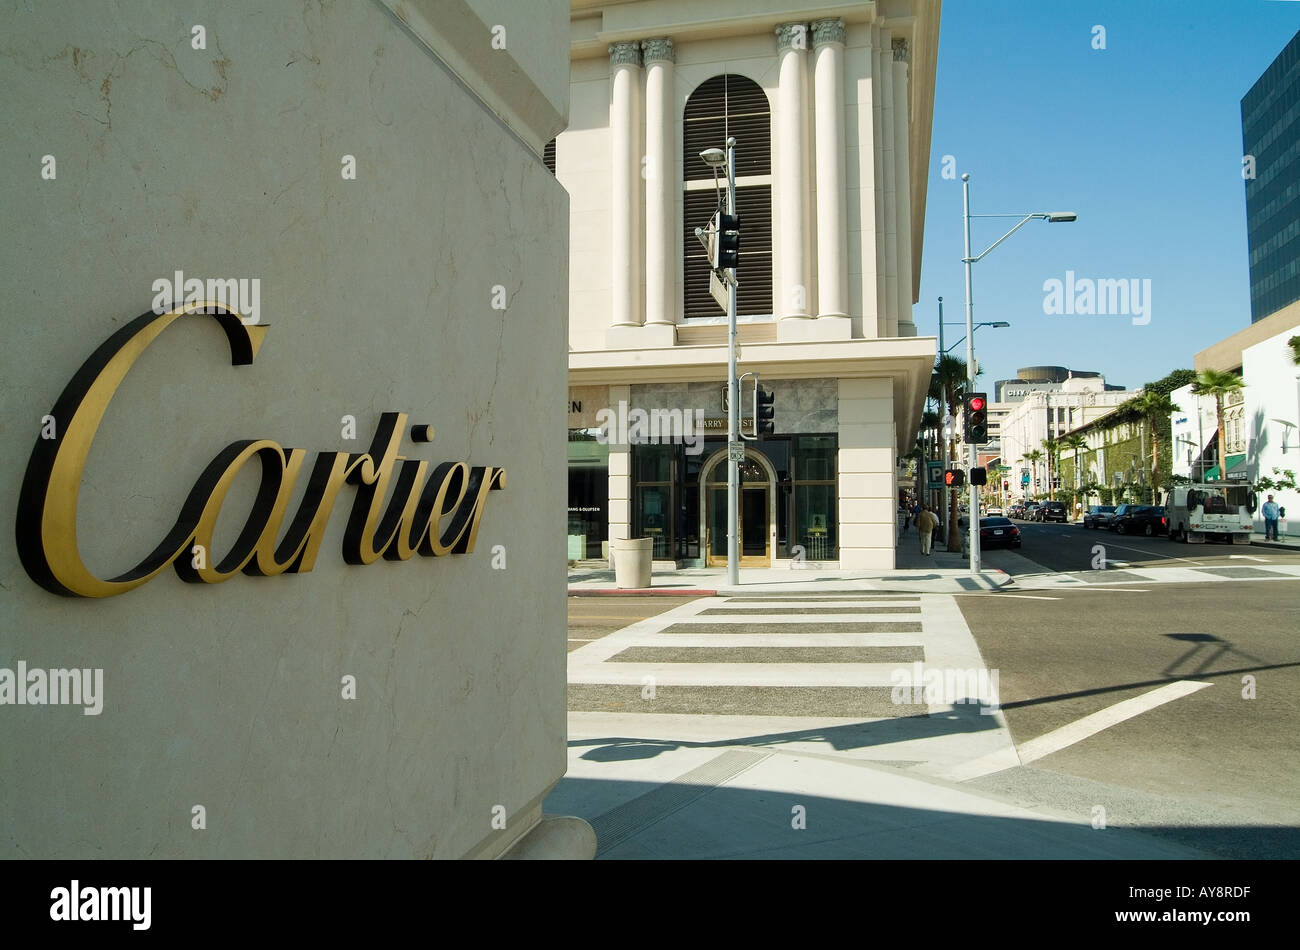 Beverly Hills California, shop, shops, department, stores, Rodeo drive, Luxury shopping, Cartier sign - Stock Image